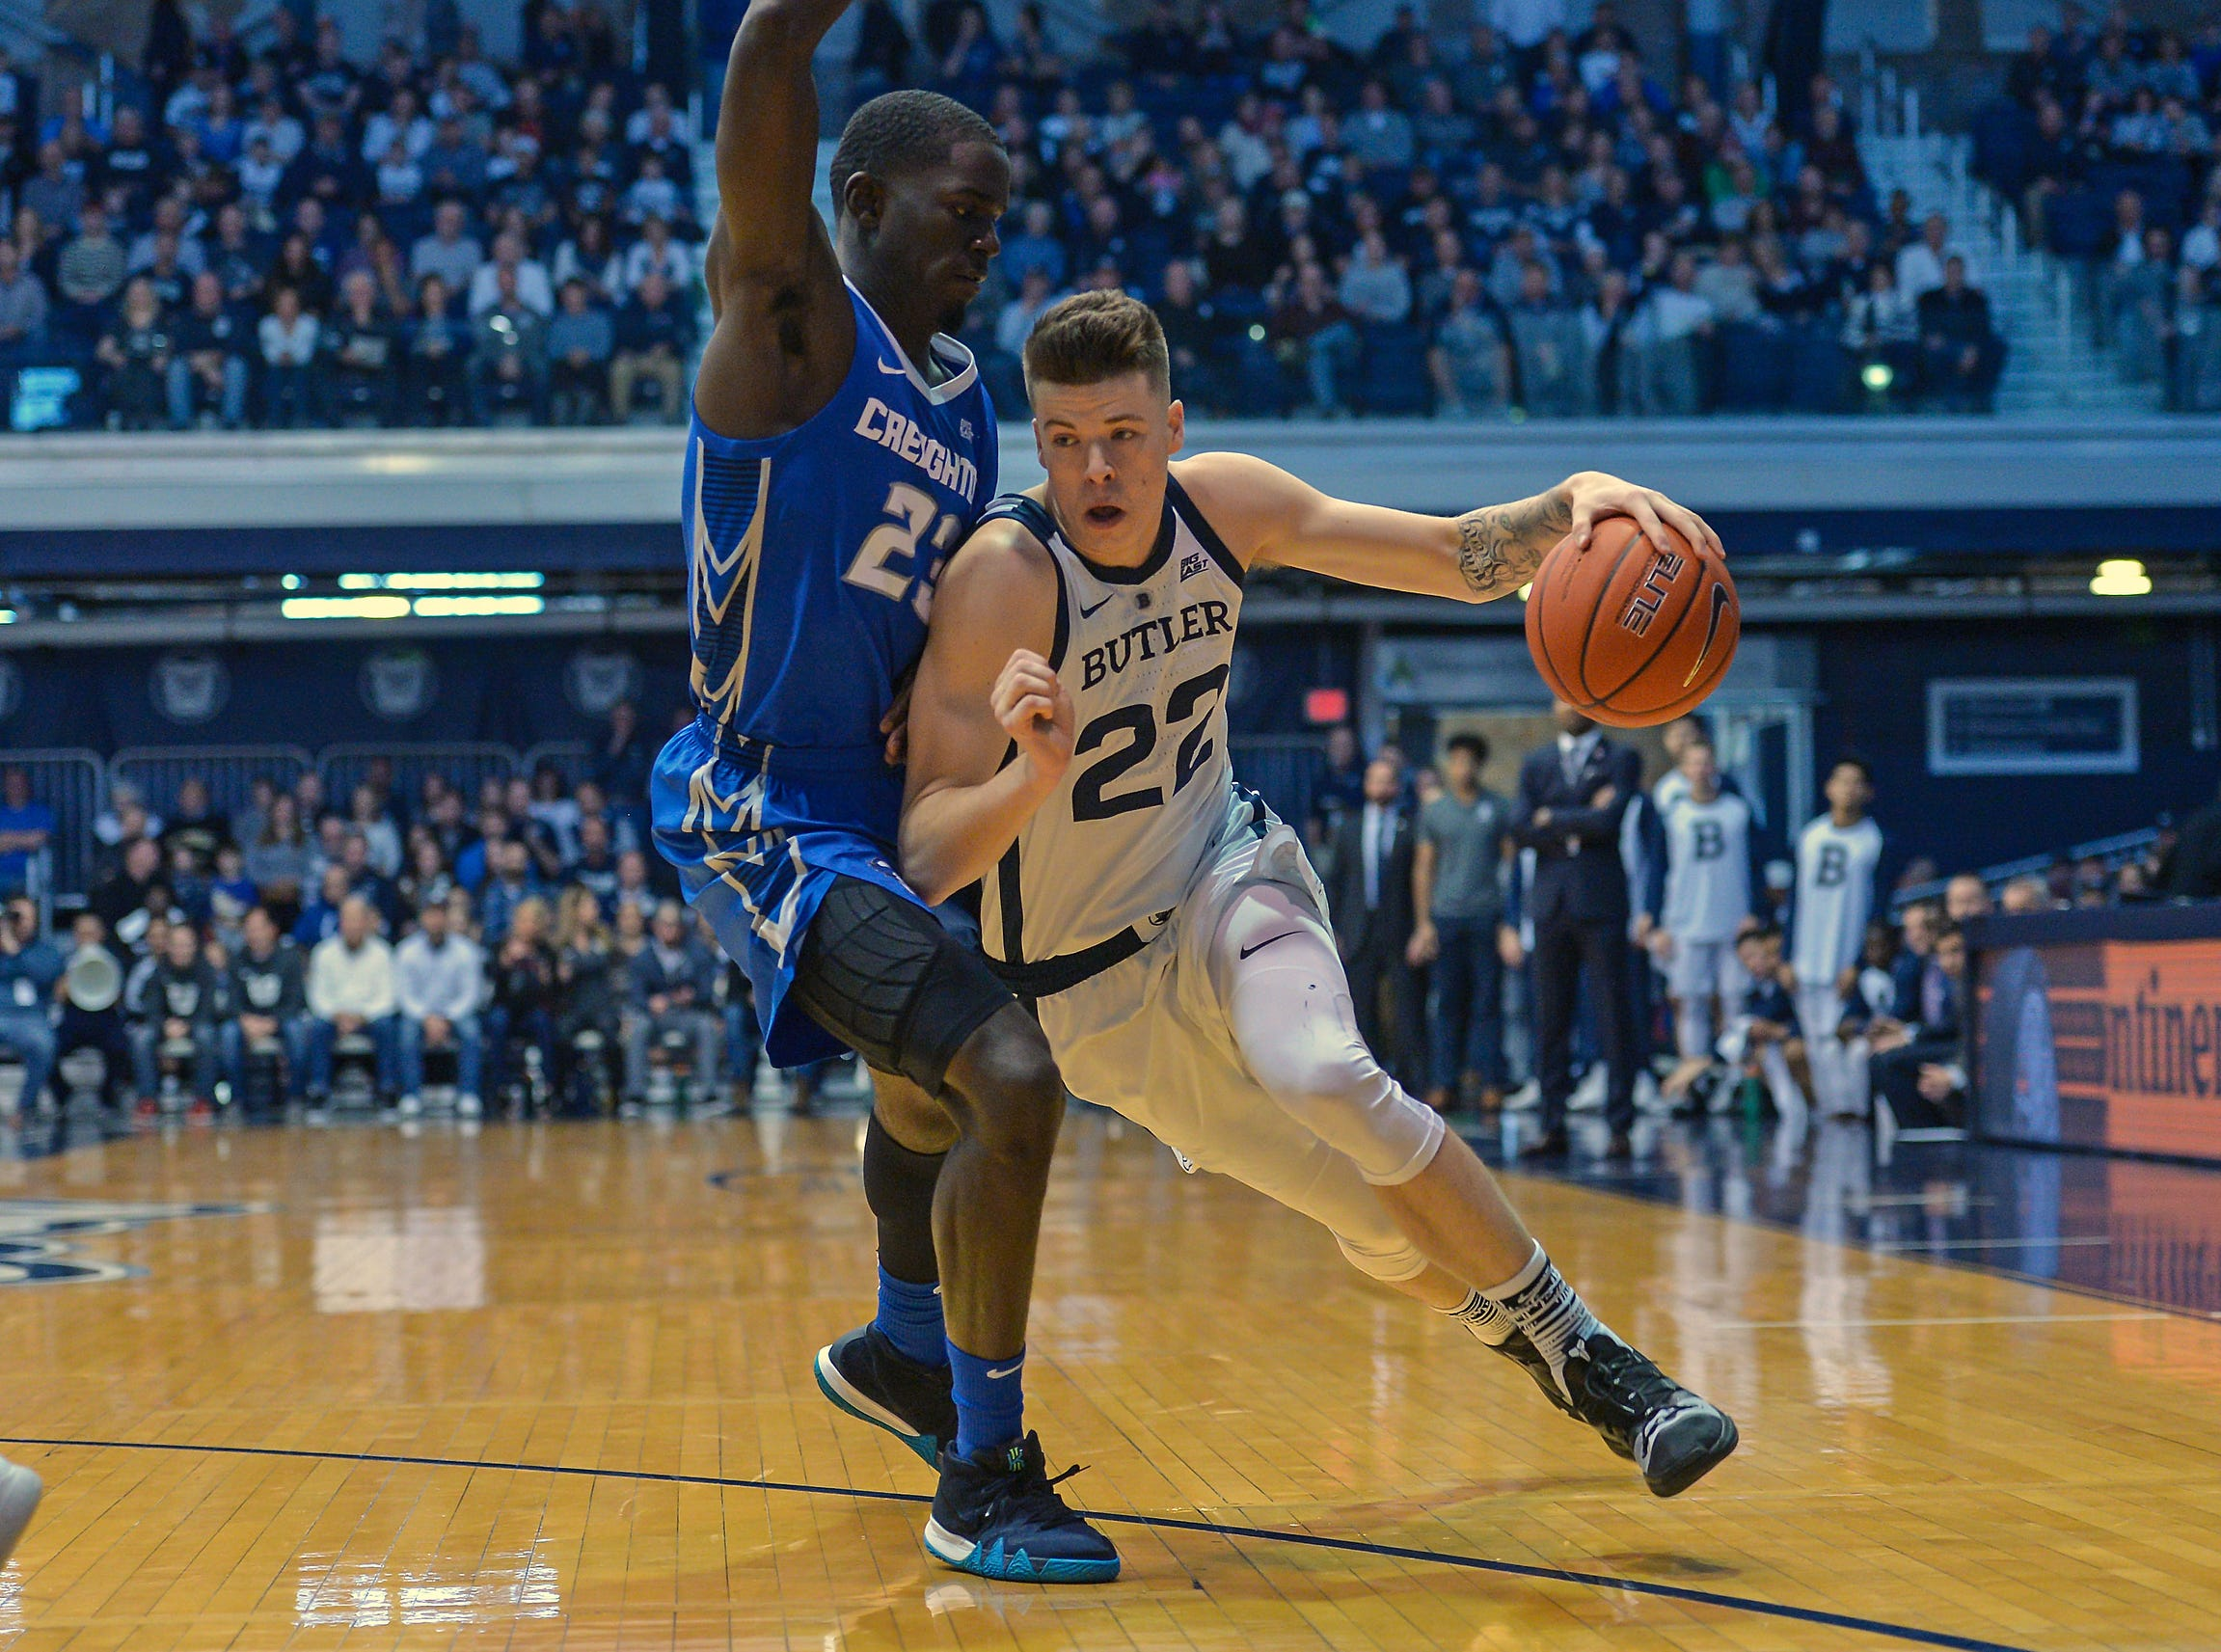 Butler Bulldogs forward Sean McDermott (22) works the ball against Creighton Bluejays forward Damien Jefferson (23) during the first half of game action between Butler University and Creighton University, at Hinkle Fieldhouse in Indianapolis, Indiana on Saturday, Jan. 5, 2019.